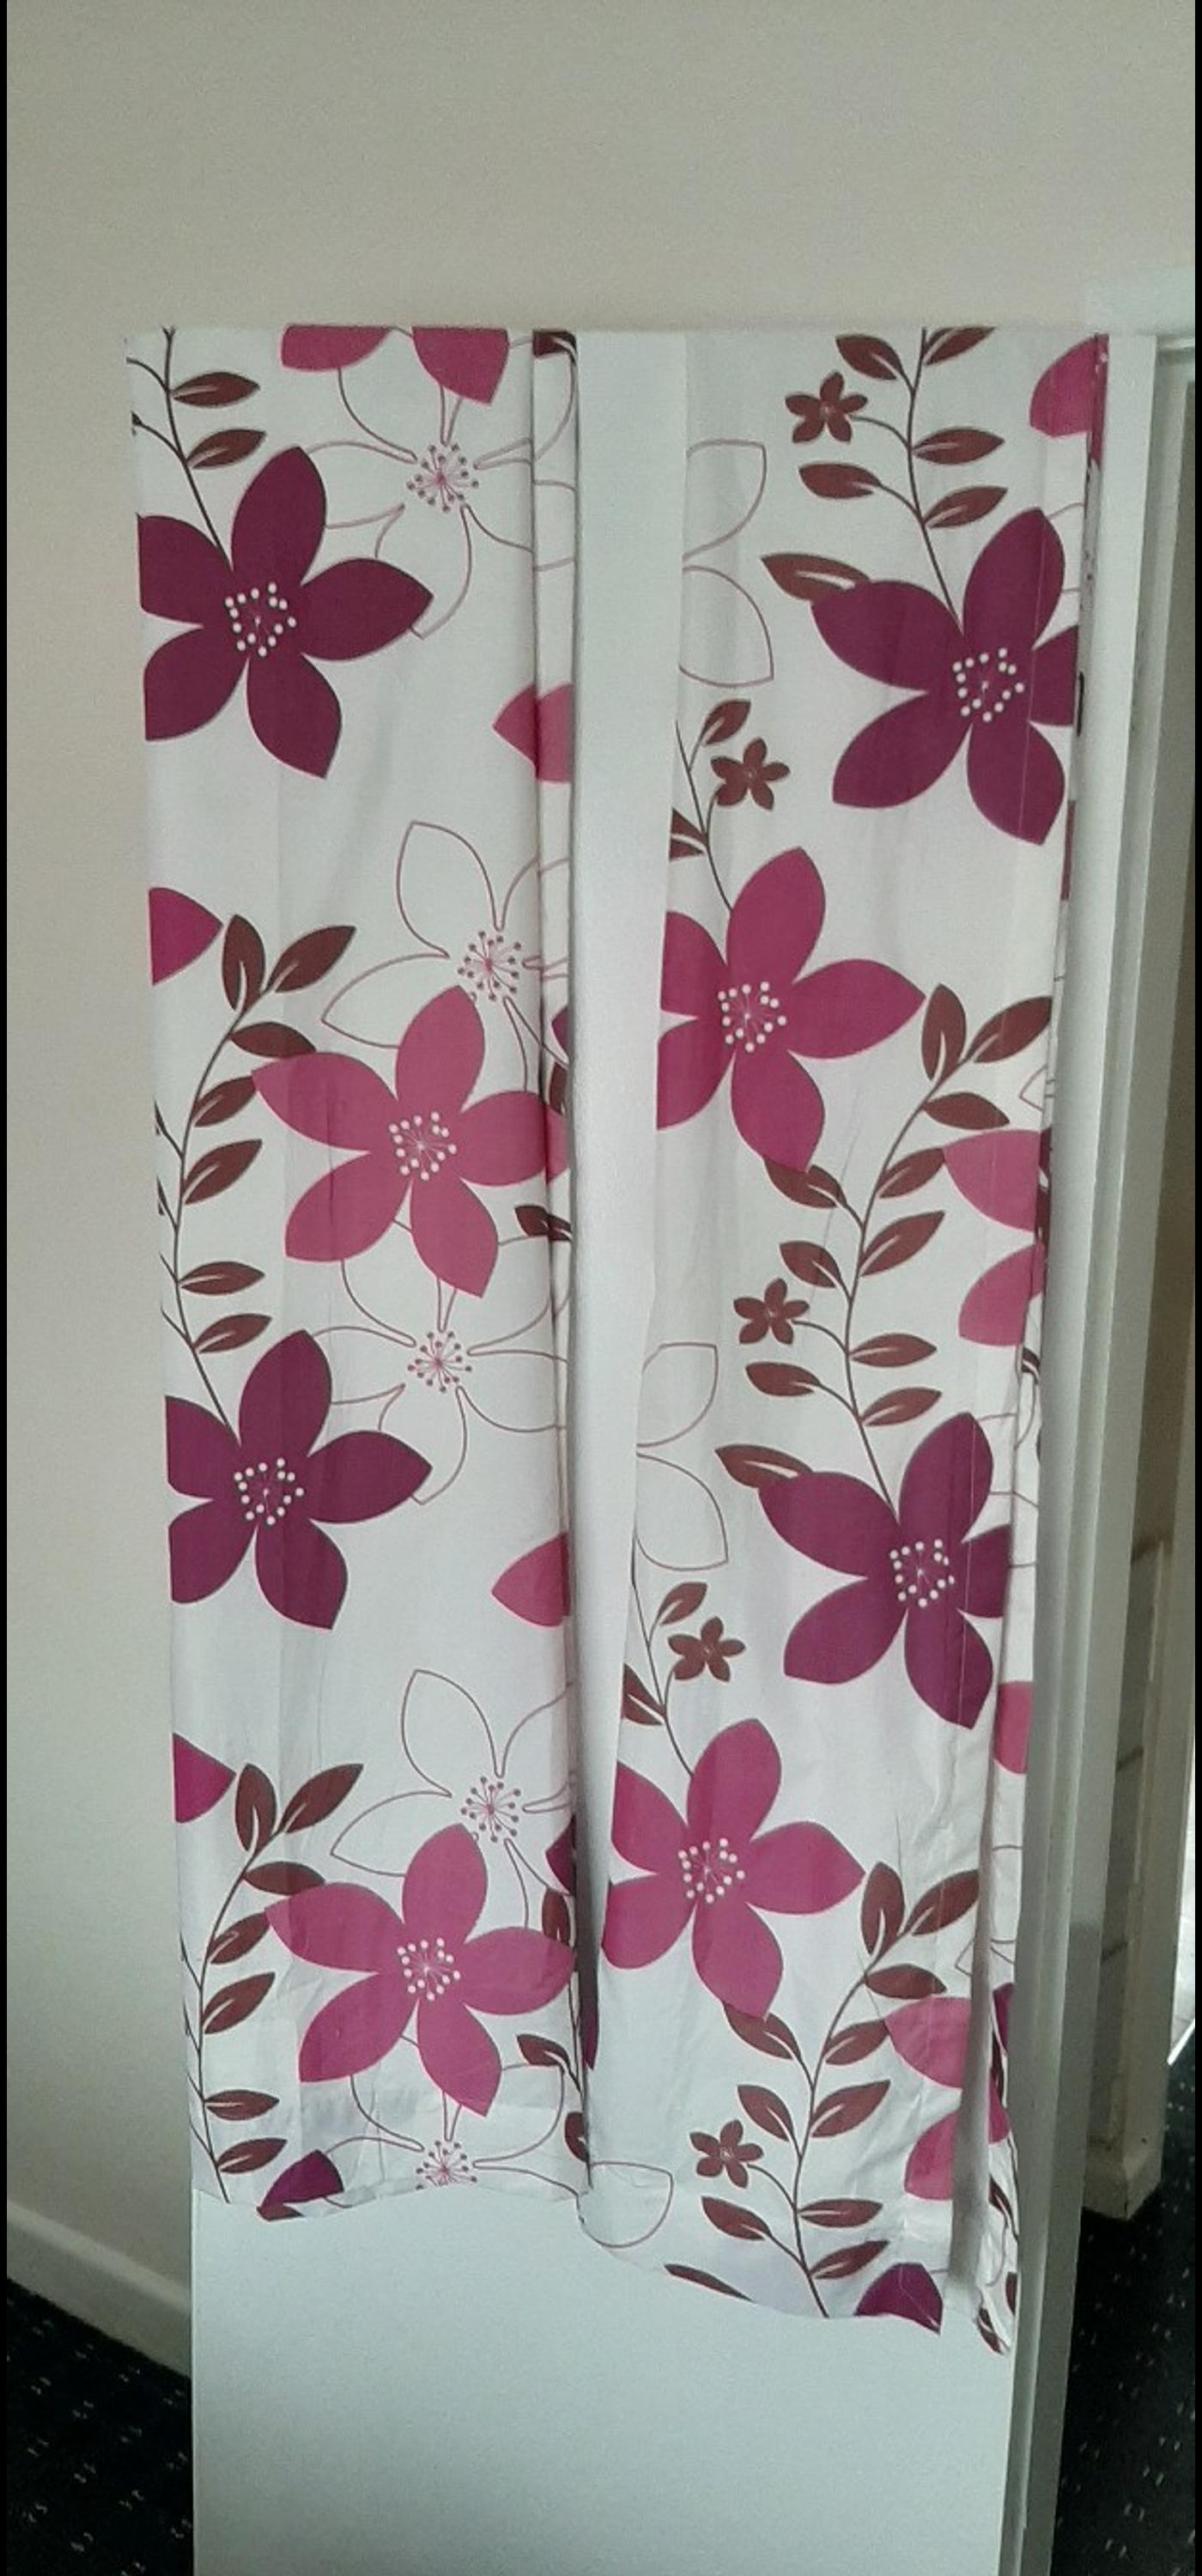 Girls Curtains 45x72 Pencil Pleat In Bl3 Bolton For 8 00 For Sale Shpock